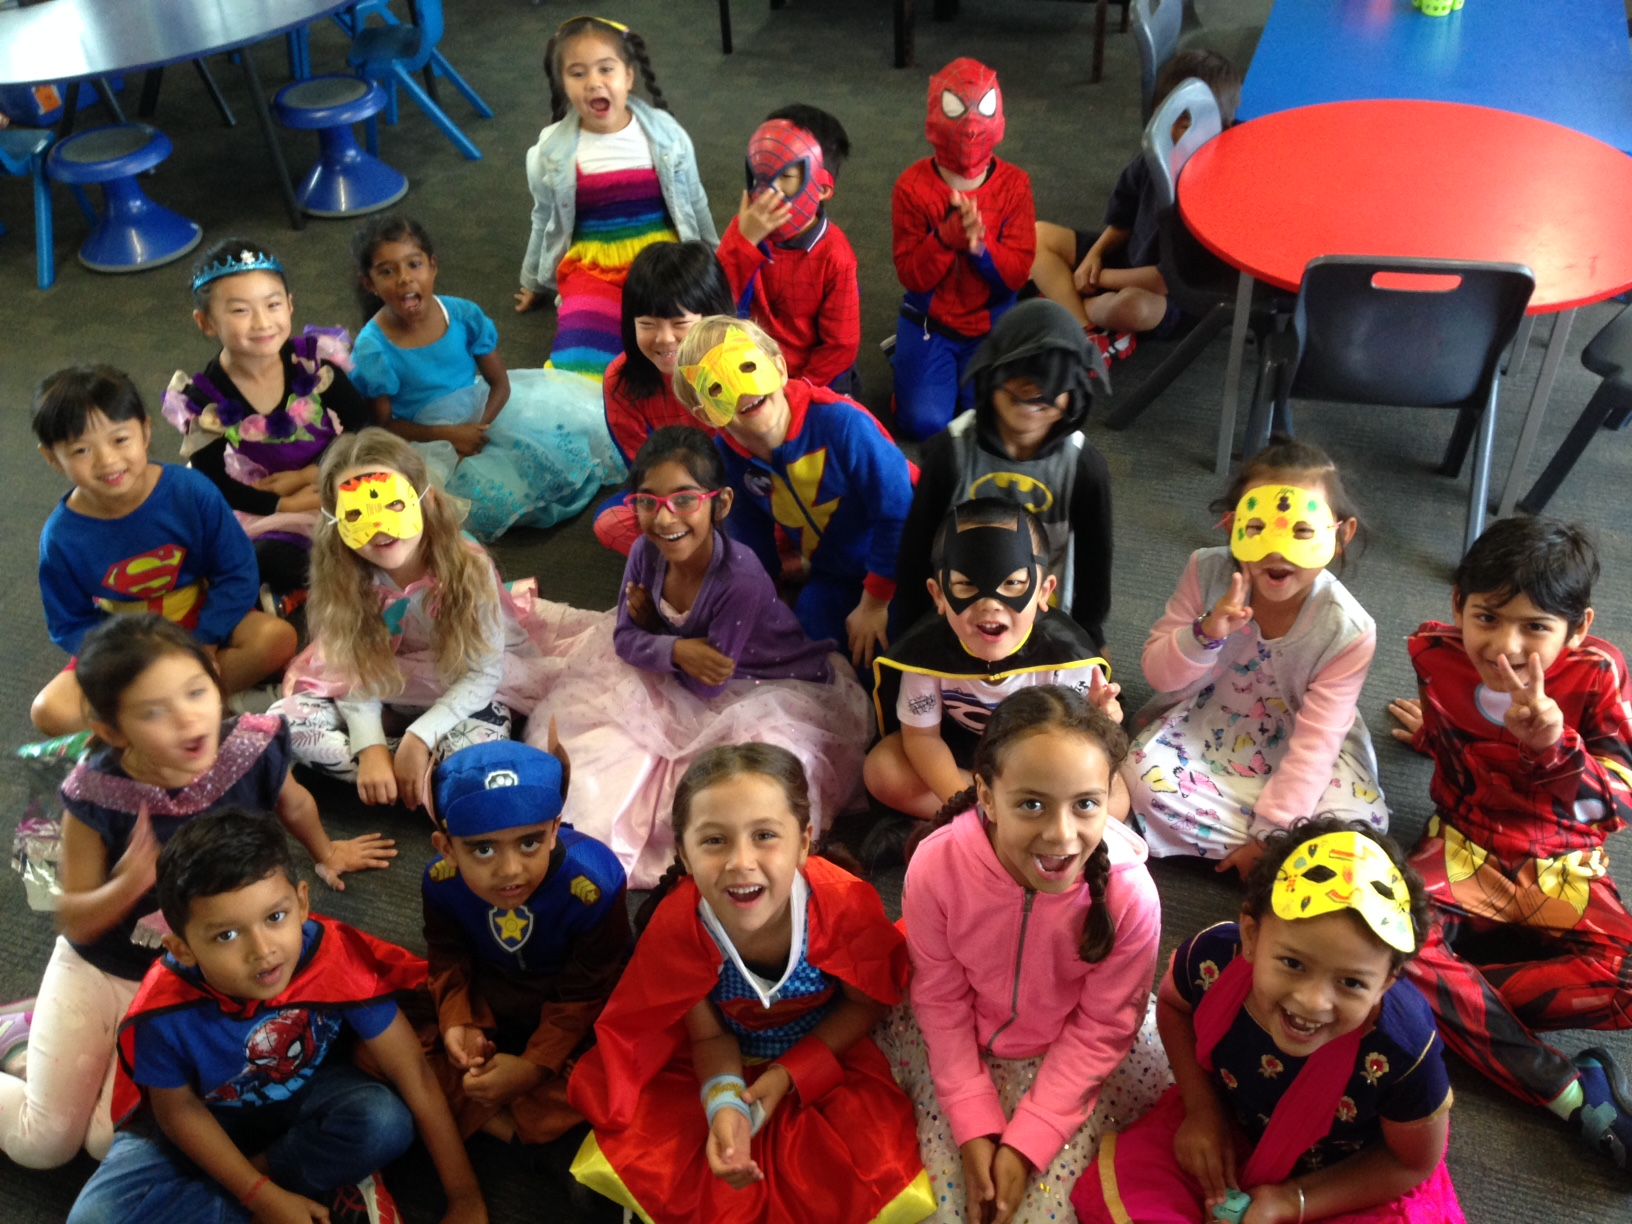 Blockhouse Bay Primary School - Bread and superheroes!